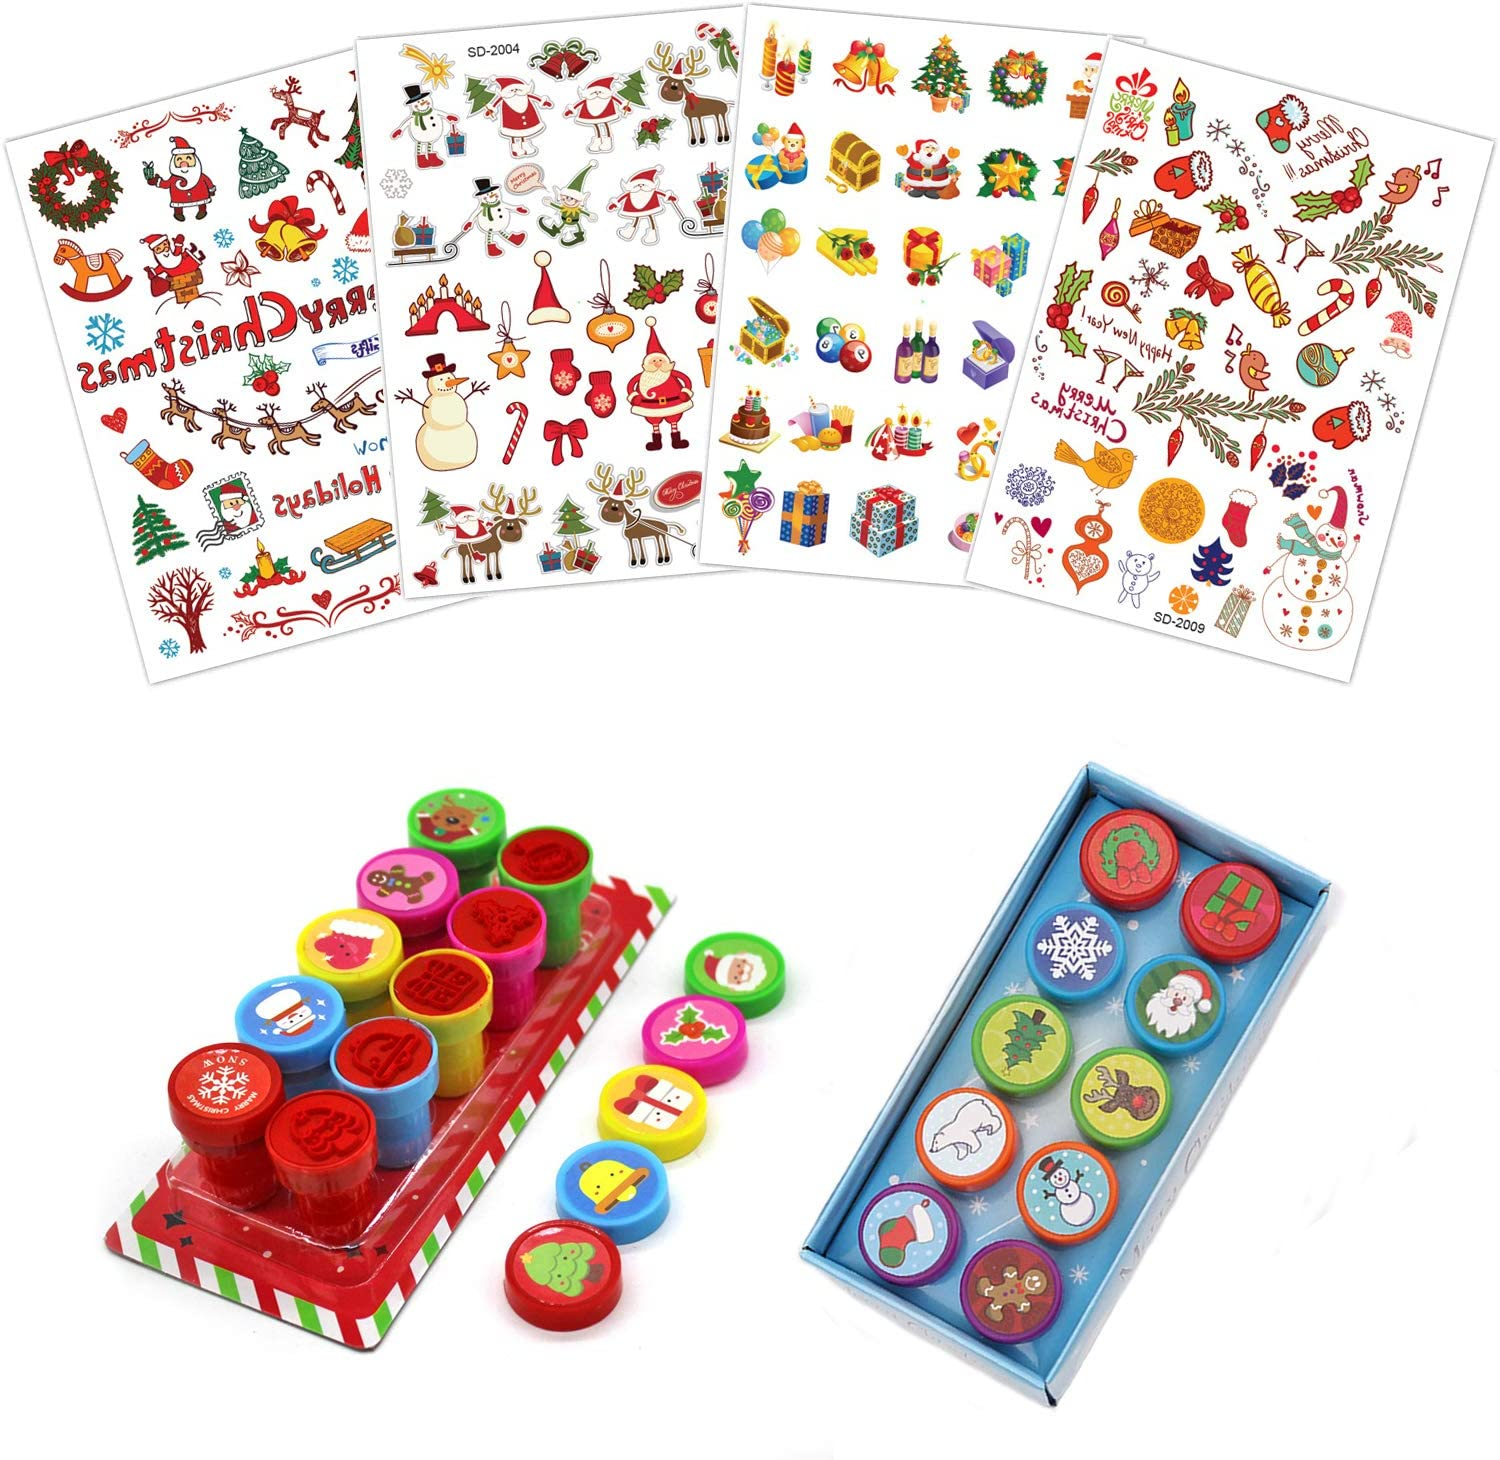 Chnaivy 20 Pieces Christmas Assorted Plastic Stamps Self-Ink Stampers and 4 Sheets Xmas Temporary Tattoos Stickers Stocking Stuffers for Kids New Year Gift Party Favors